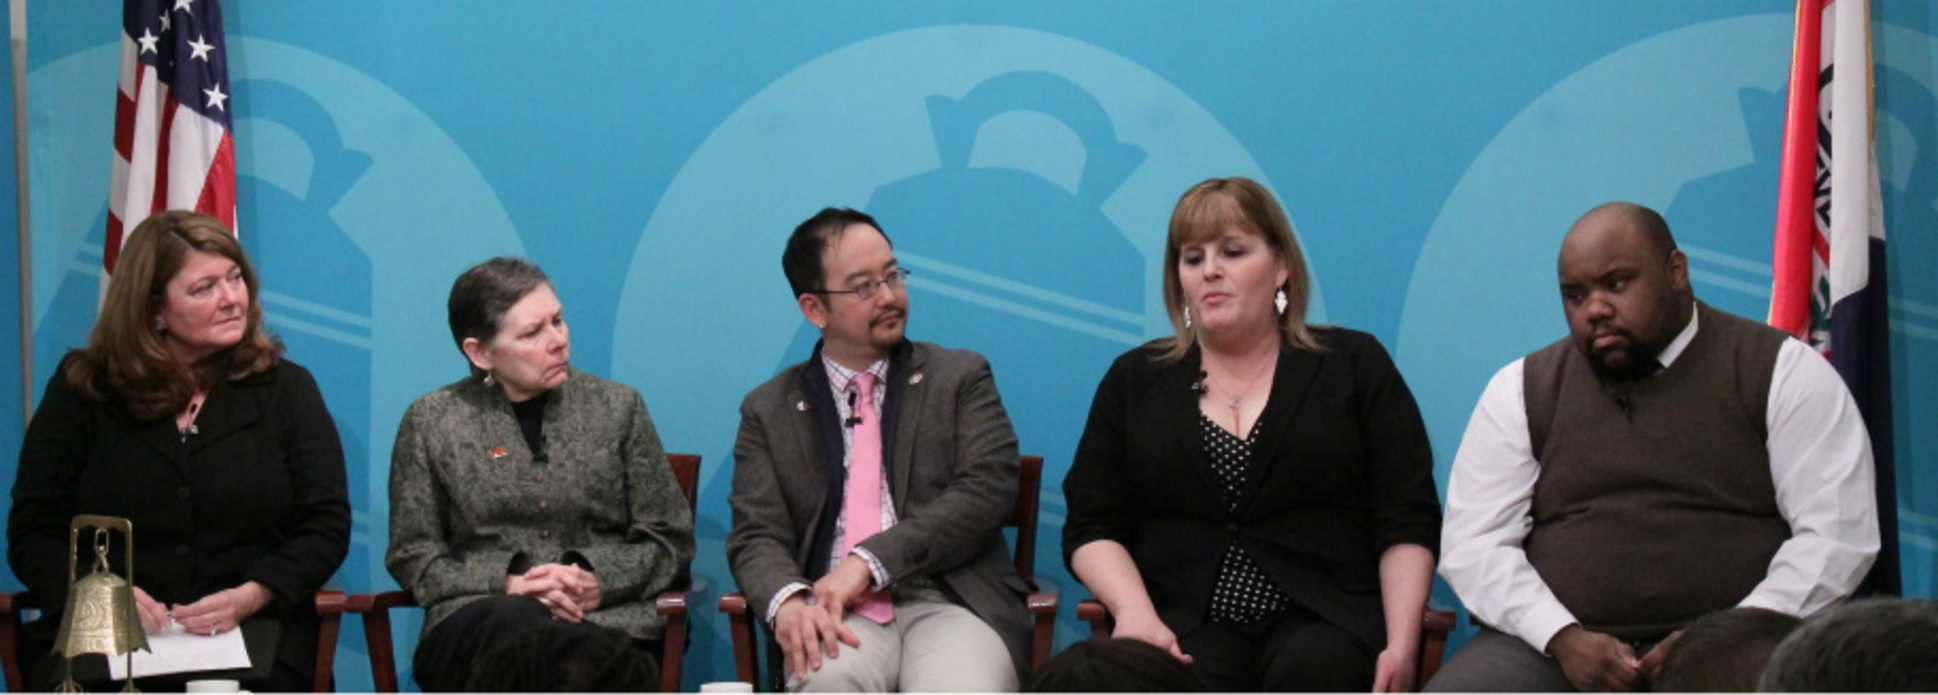 Transgender Activists Push For Equality At City Club Forum